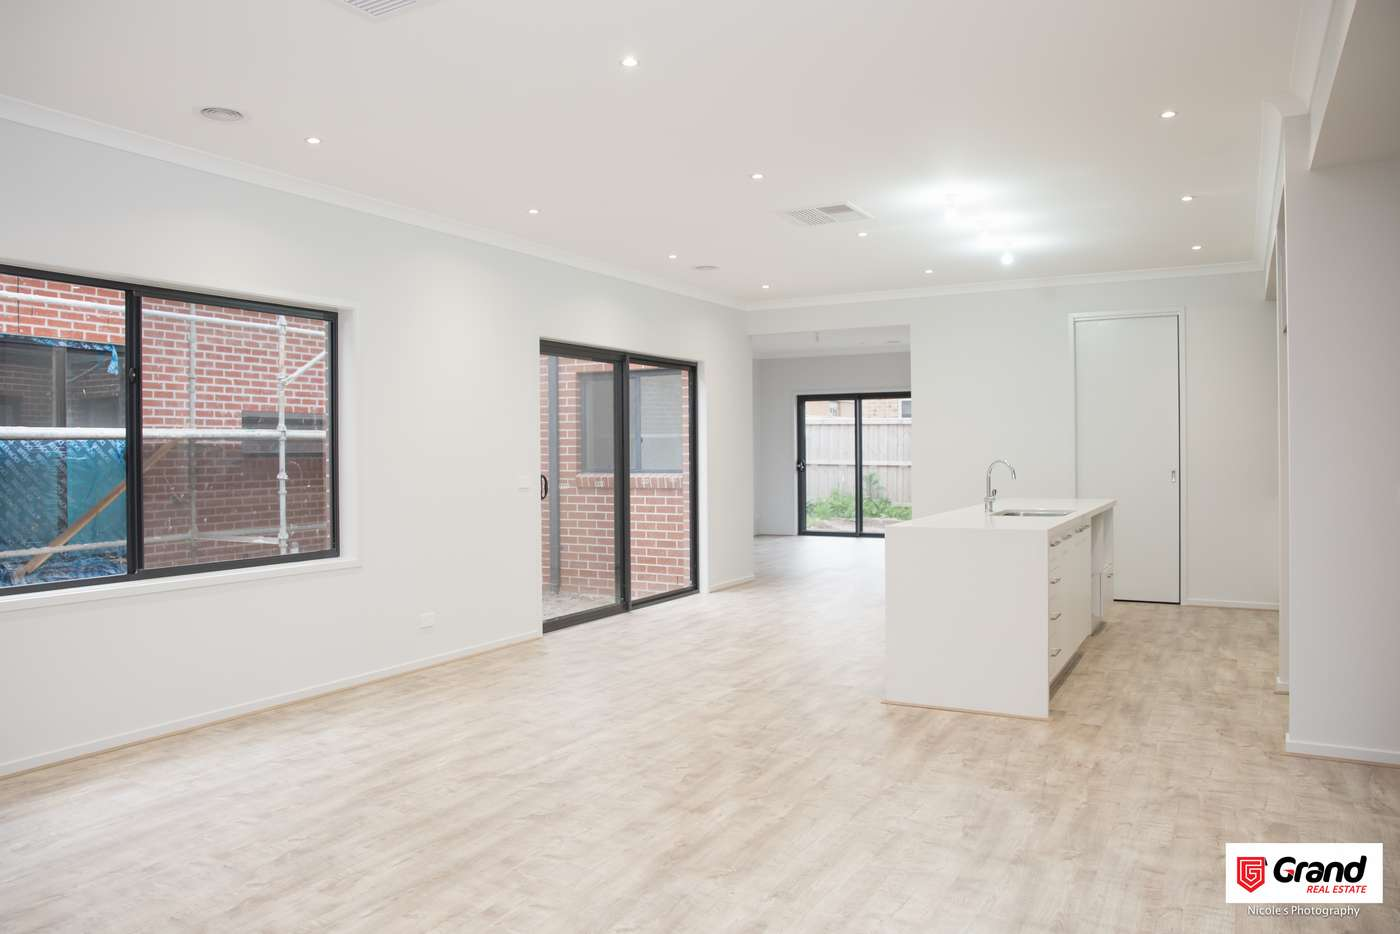 Seventh view of Homely house listing, 26 Gemma St, Cranbourne East VIC 3977